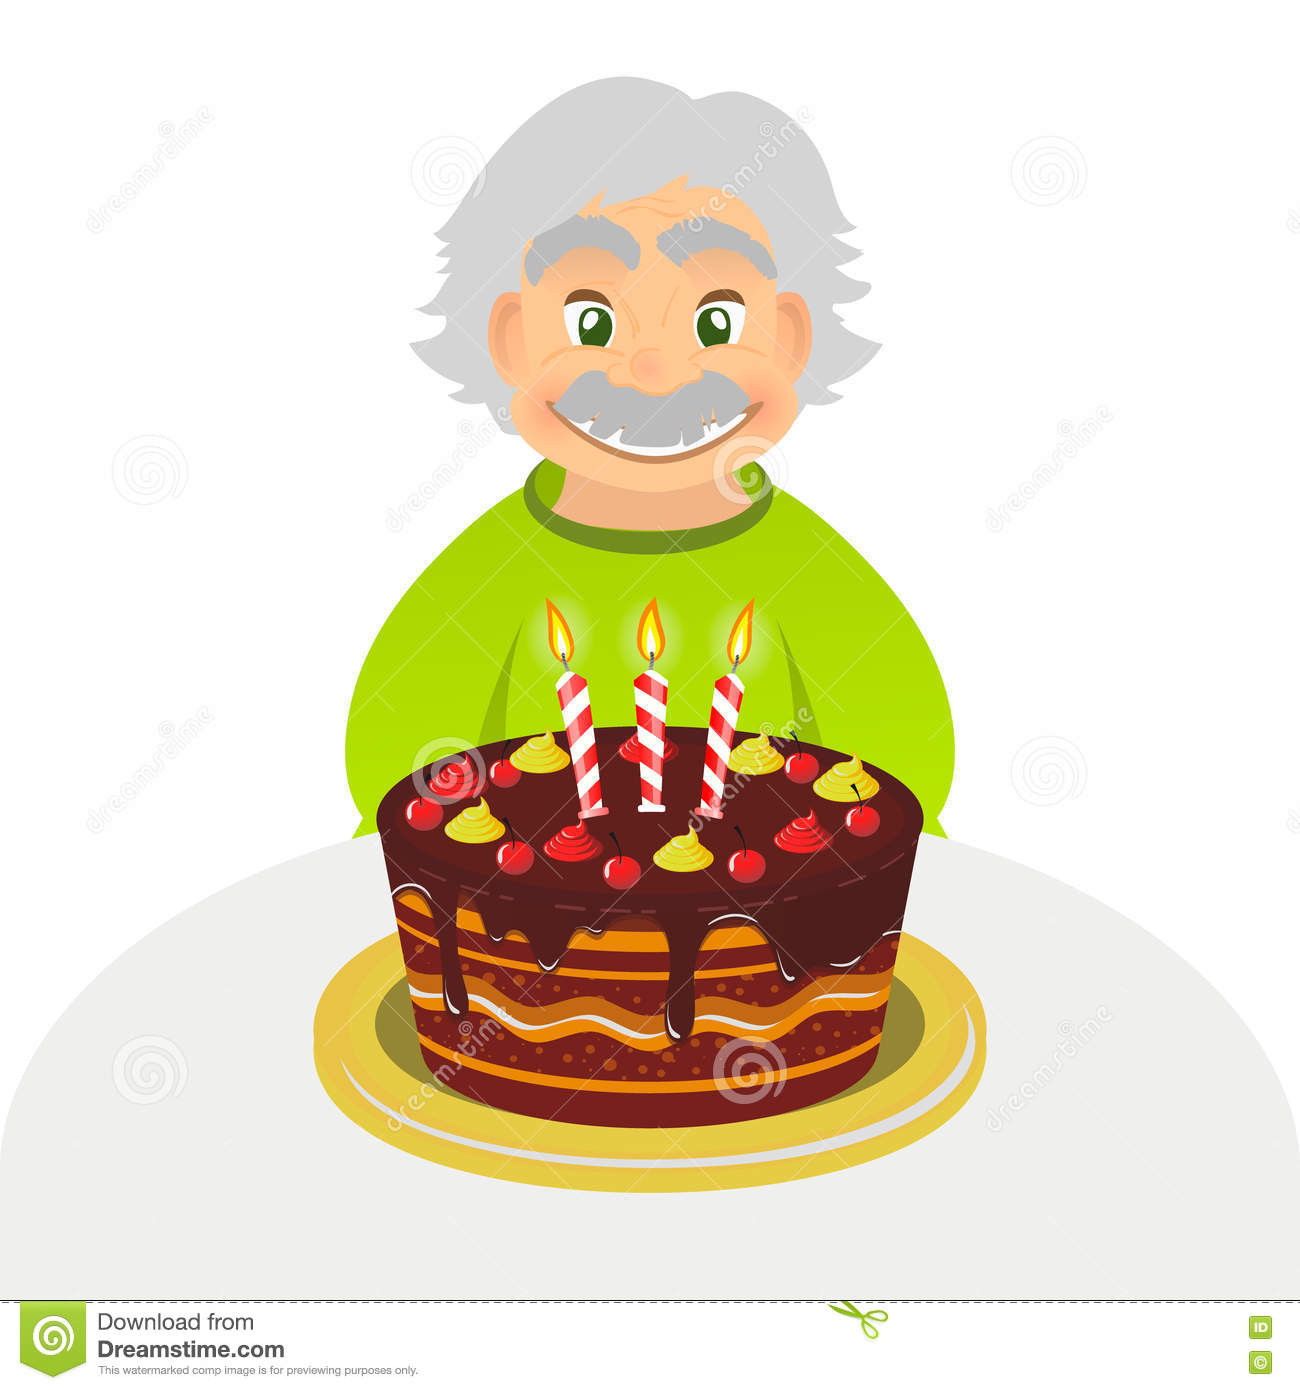 old man birthday clipart ; old-man-celebrating-birthday-senior-man-chocolate-cake-candle-sitting-alone-over-white-portrait-grandfather-gre-78622013